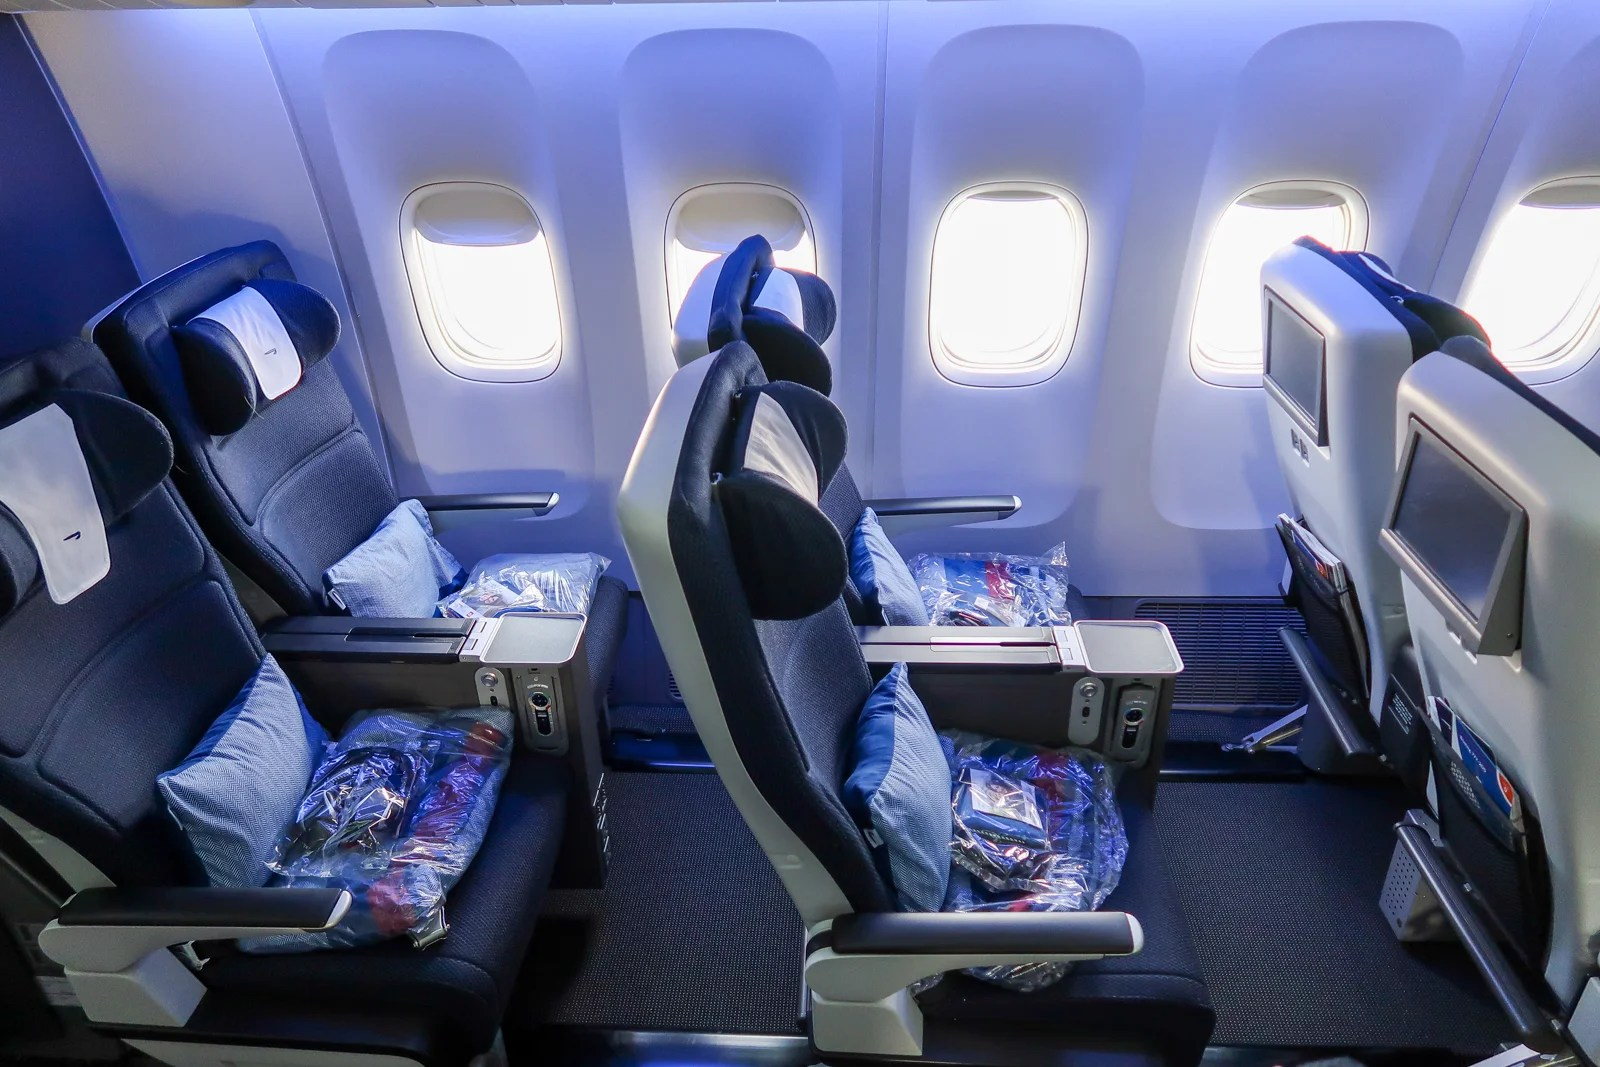 Refreshed but with room for refinement: A review of British Airways World Traveller Plus on the refurbished 777